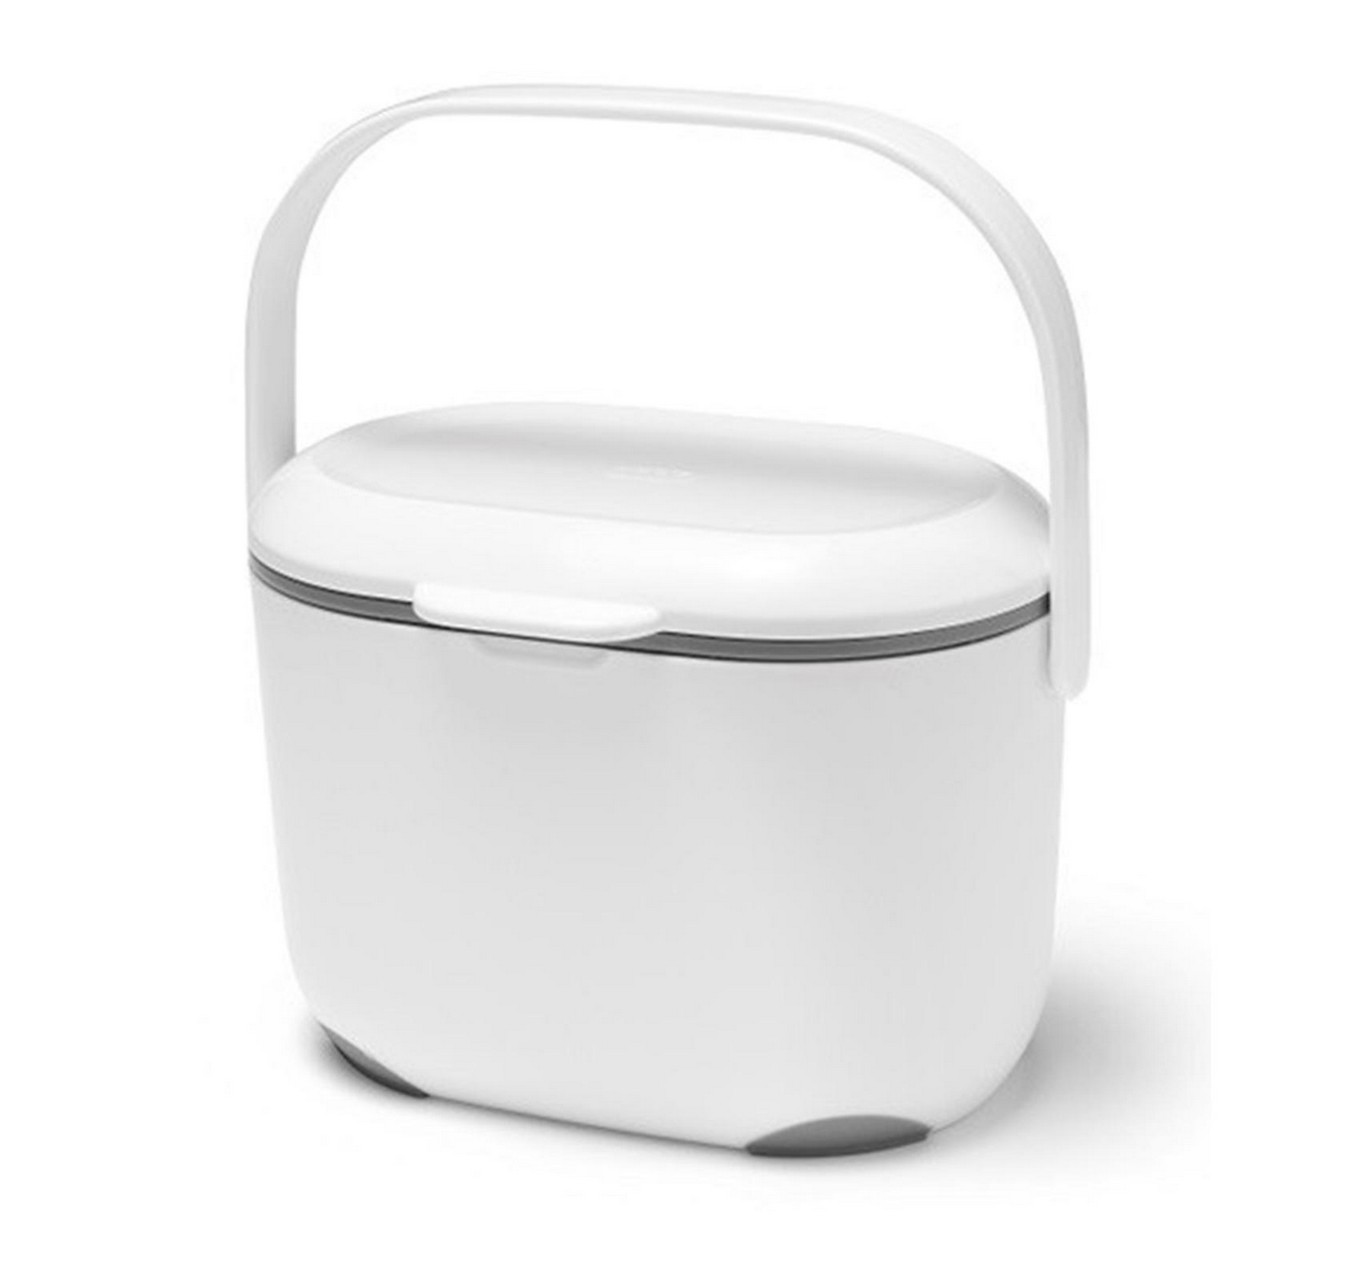 Compost Caddy White & Metallic